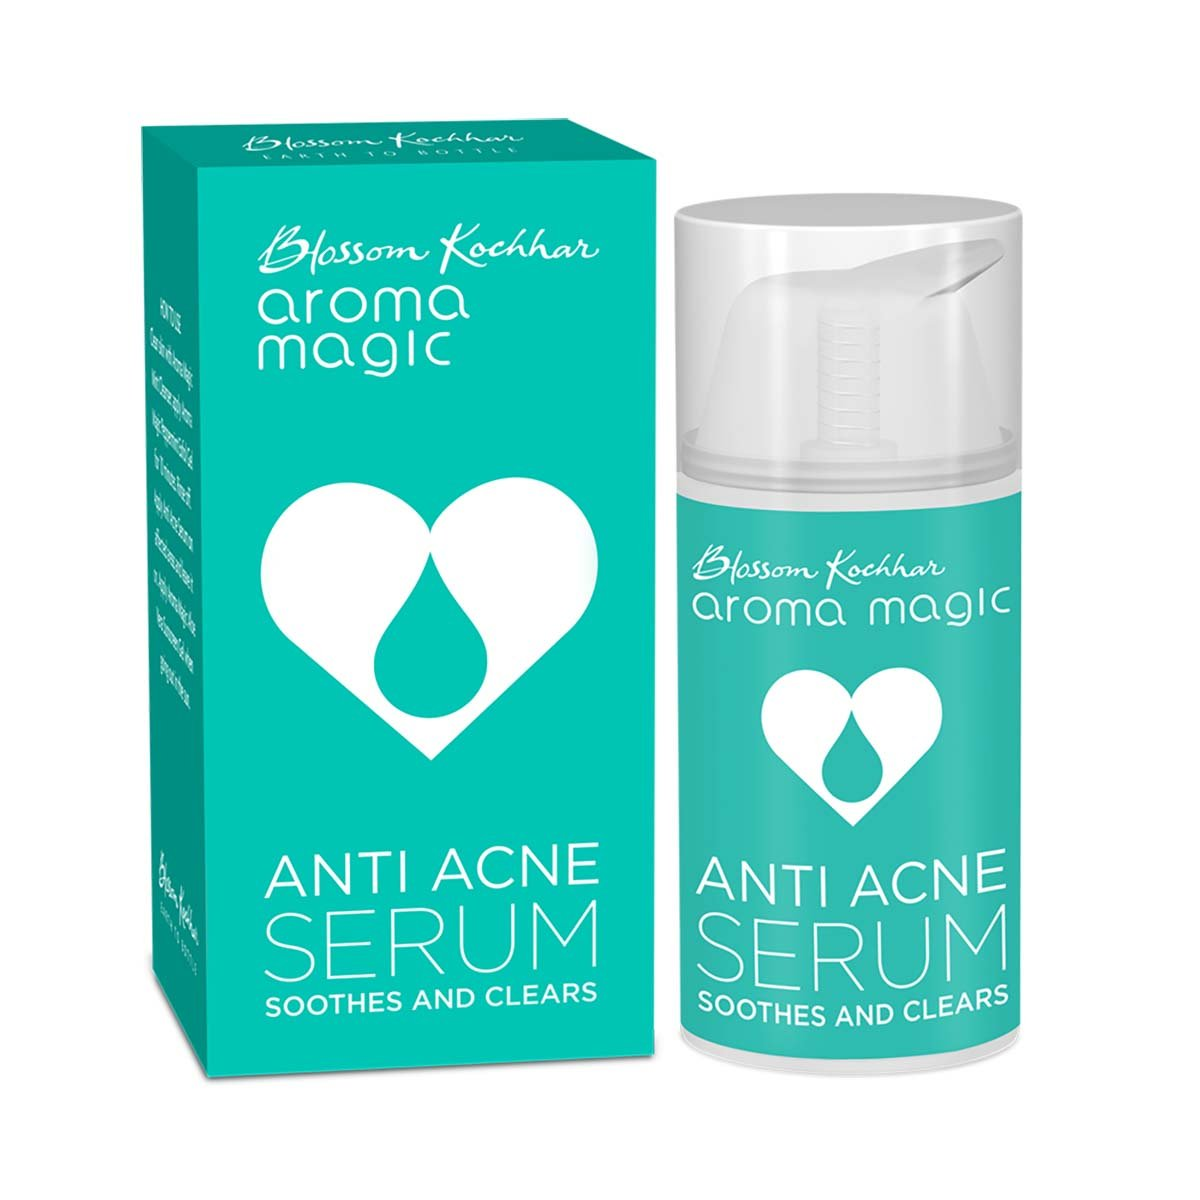 Anti Acne Serum Buy Anti Acne Serum Online In Sri Lanka